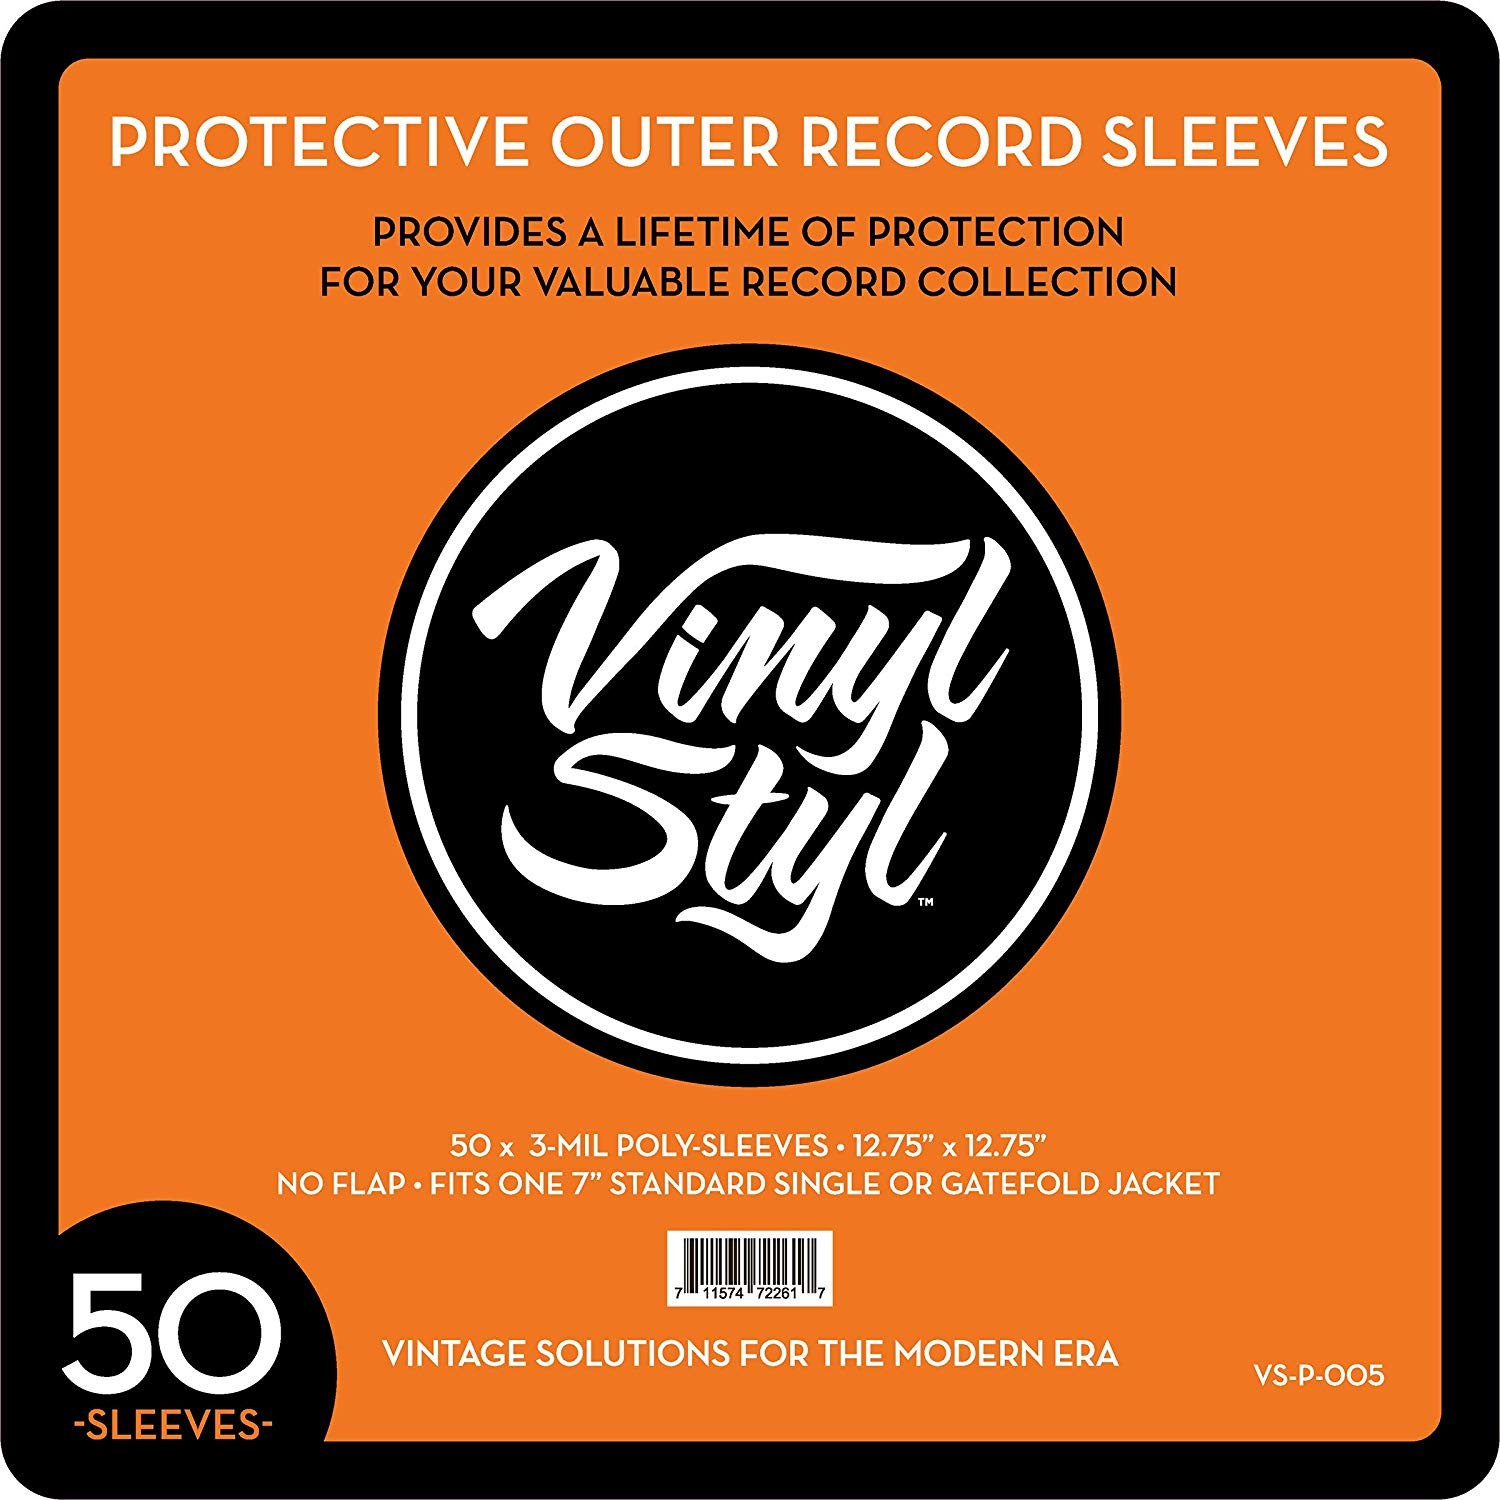 """Vinyl Styl - 12.75"""" X 12.75"""" 3 Mil Protective Outer Record Sleeve (QTY: 50)"""